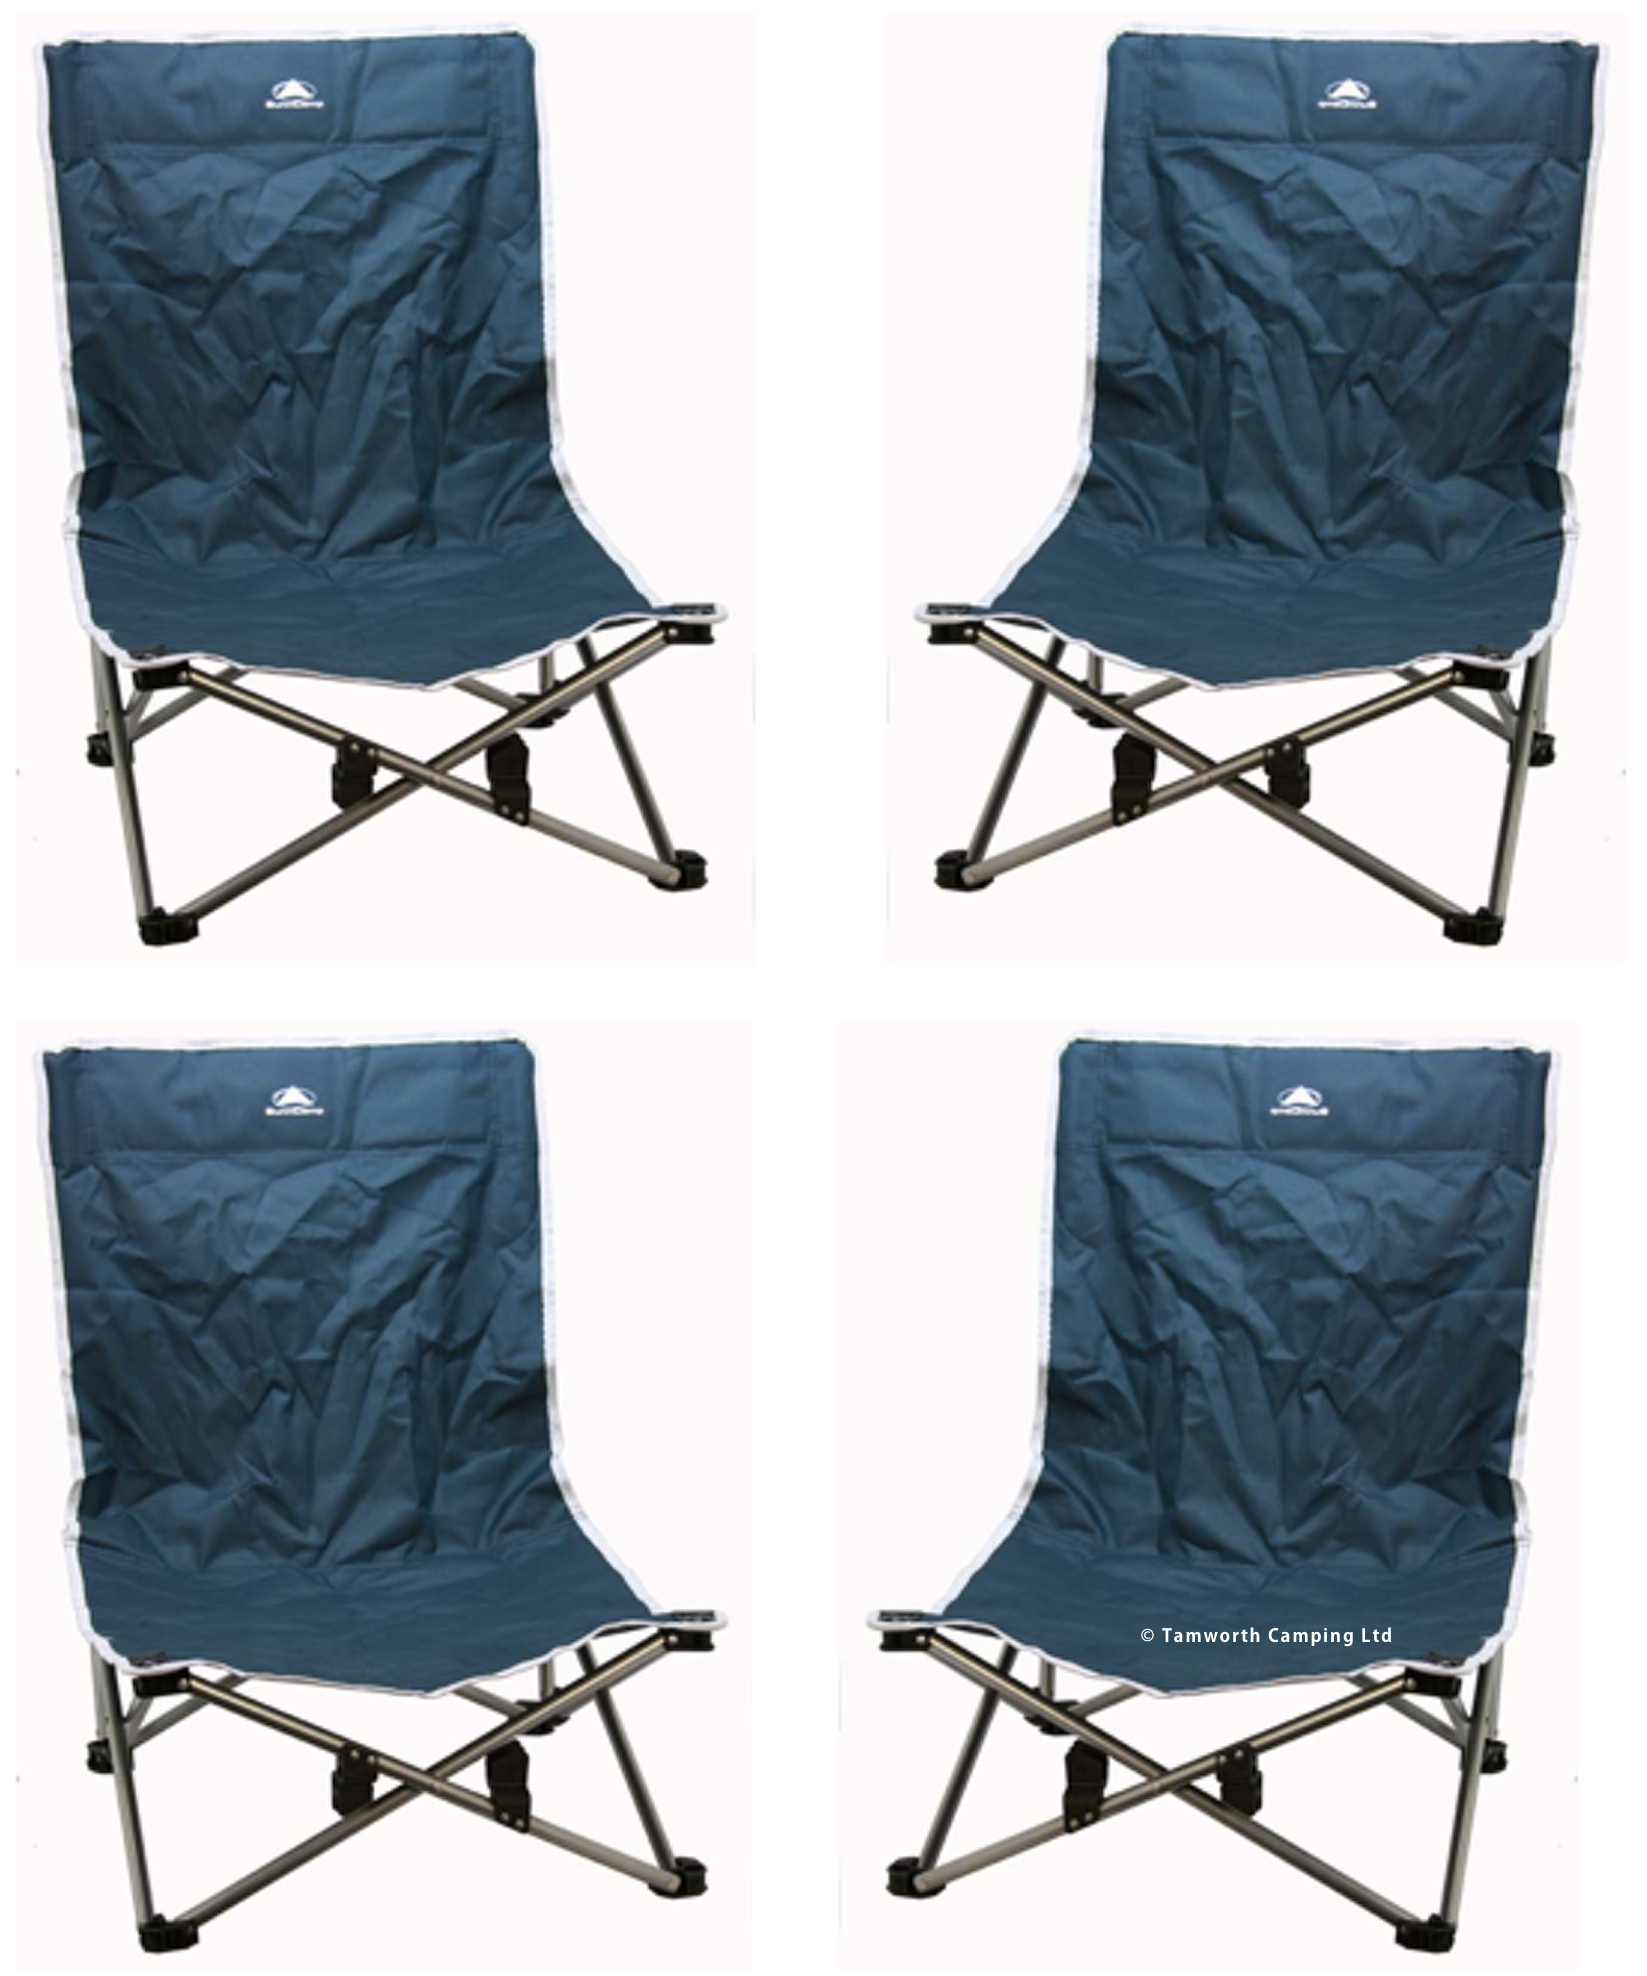 Sunncamp Low Folding Steel Beach Chair for Camping Festavals and Outdoors